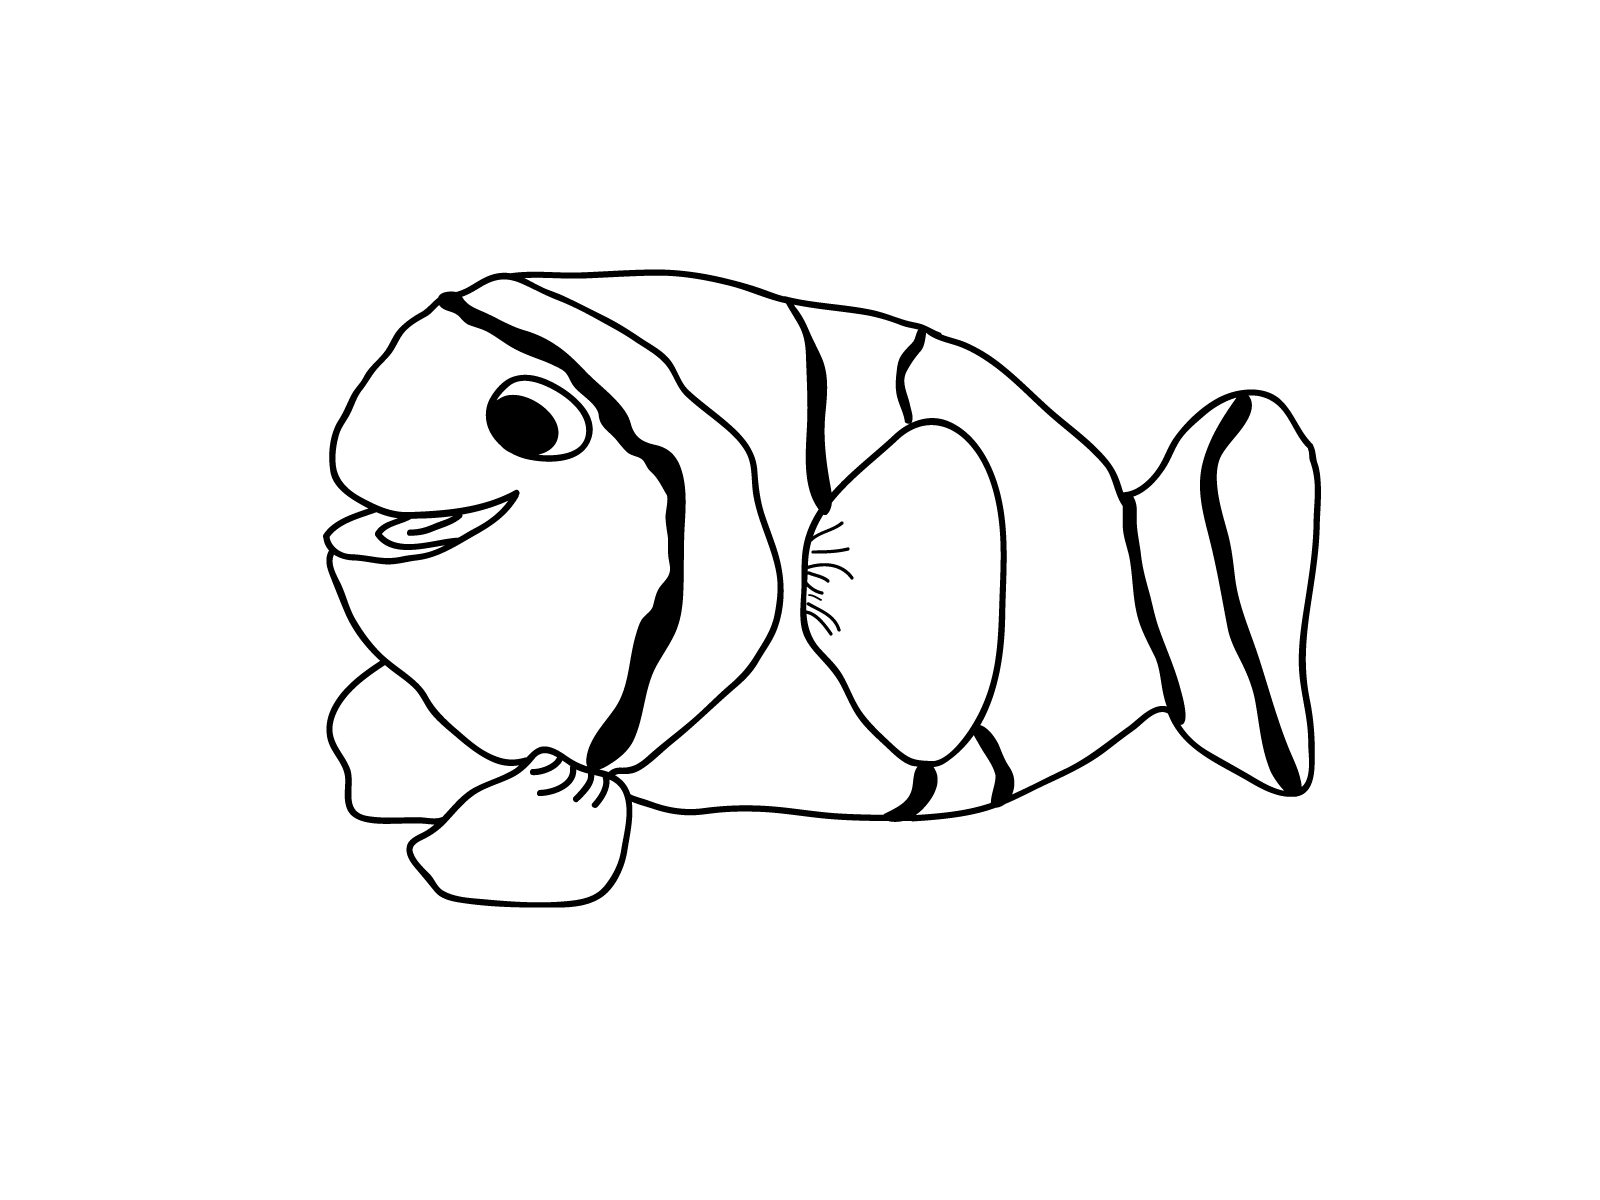 fish coloring page for young children